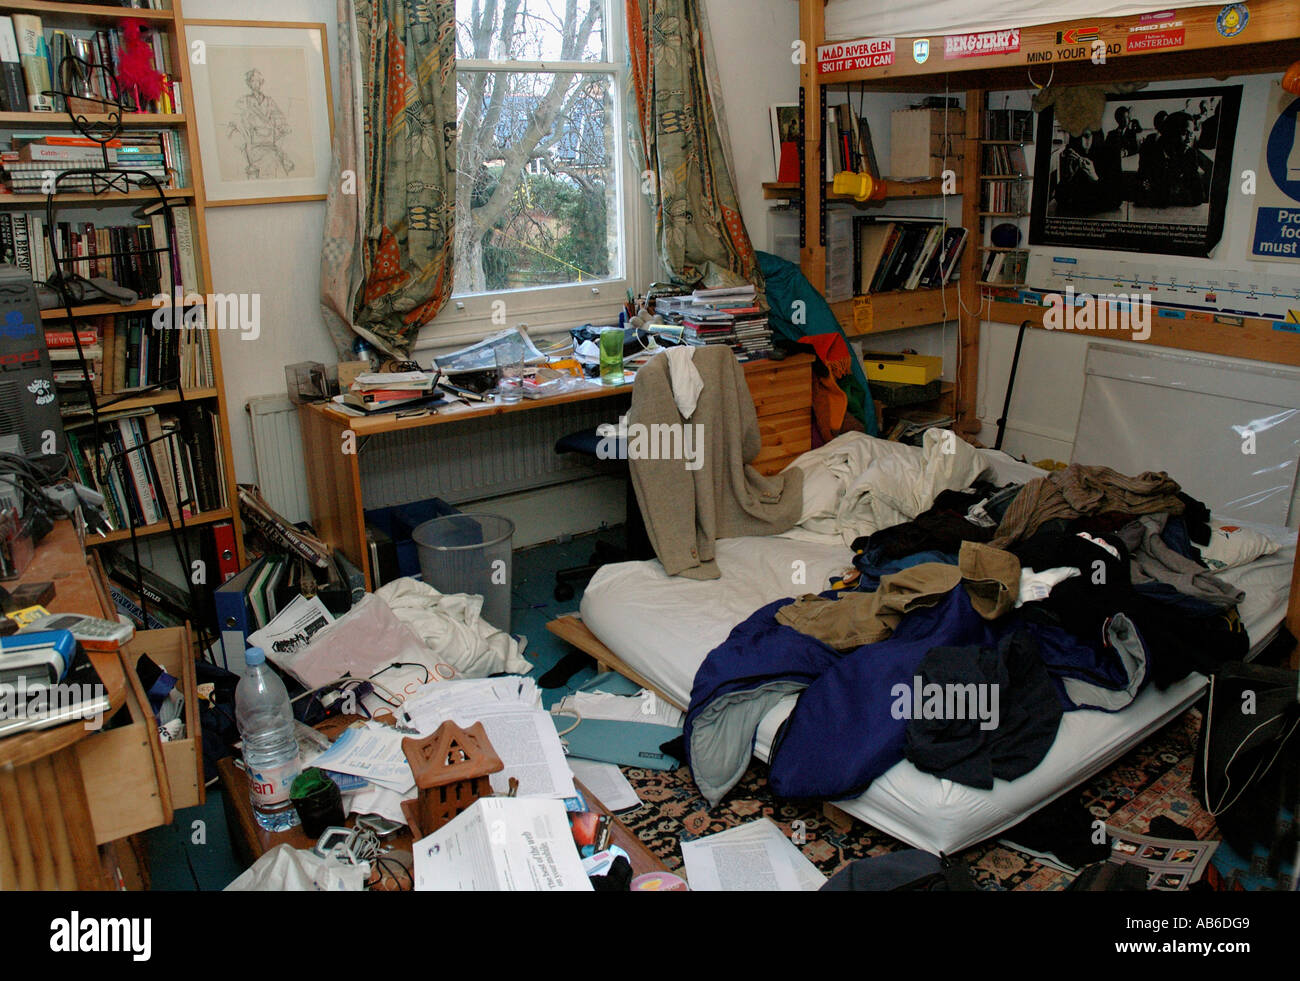 Extremely Messy Room Of A Teenage Stock Photo 7310280 Alamy